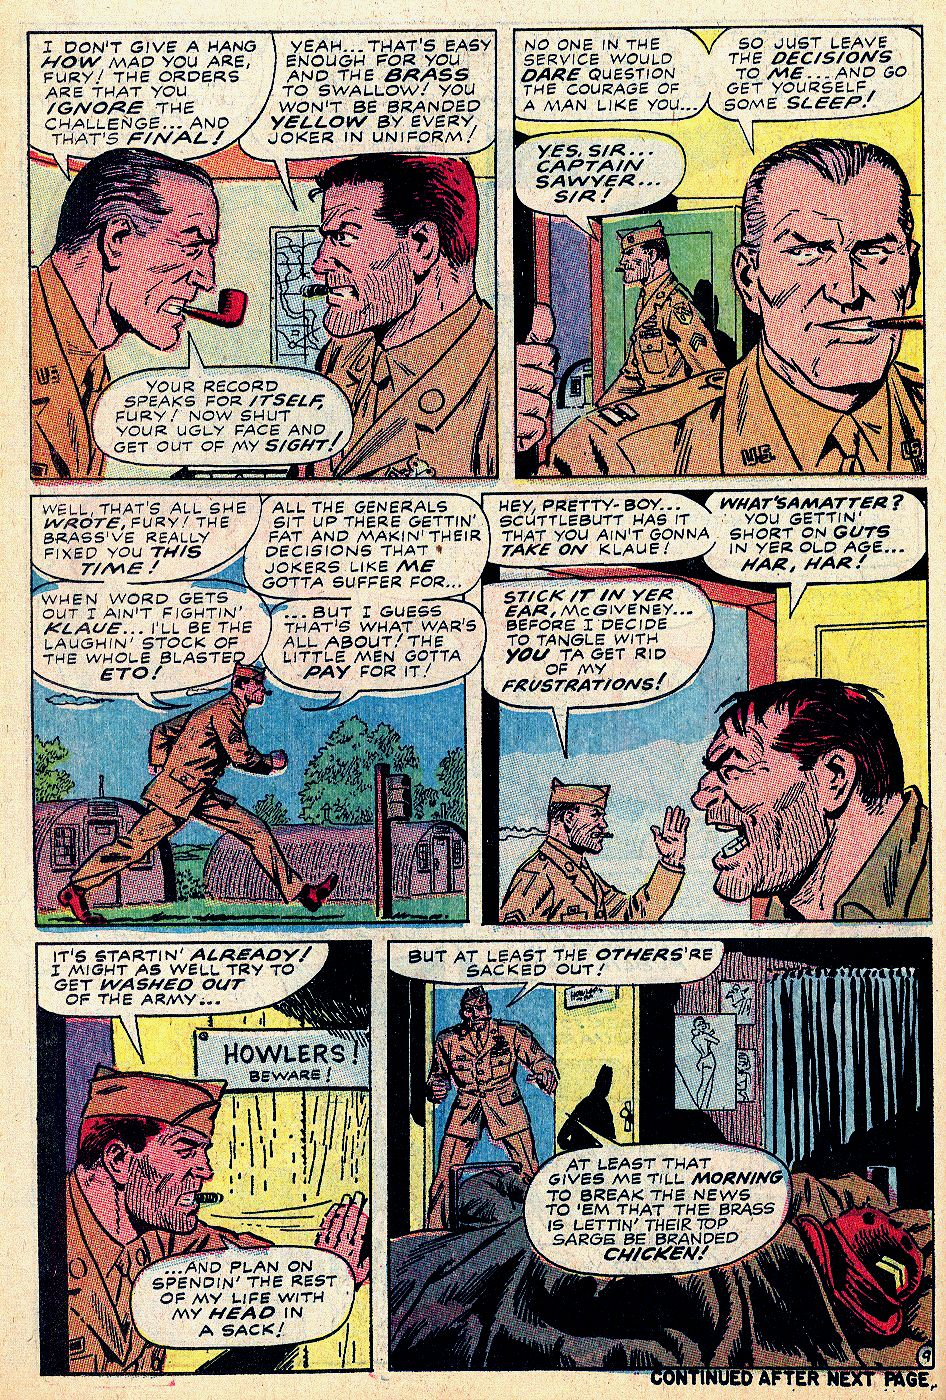 Read online Sgt. Fury comic -  Issue #59 - 14